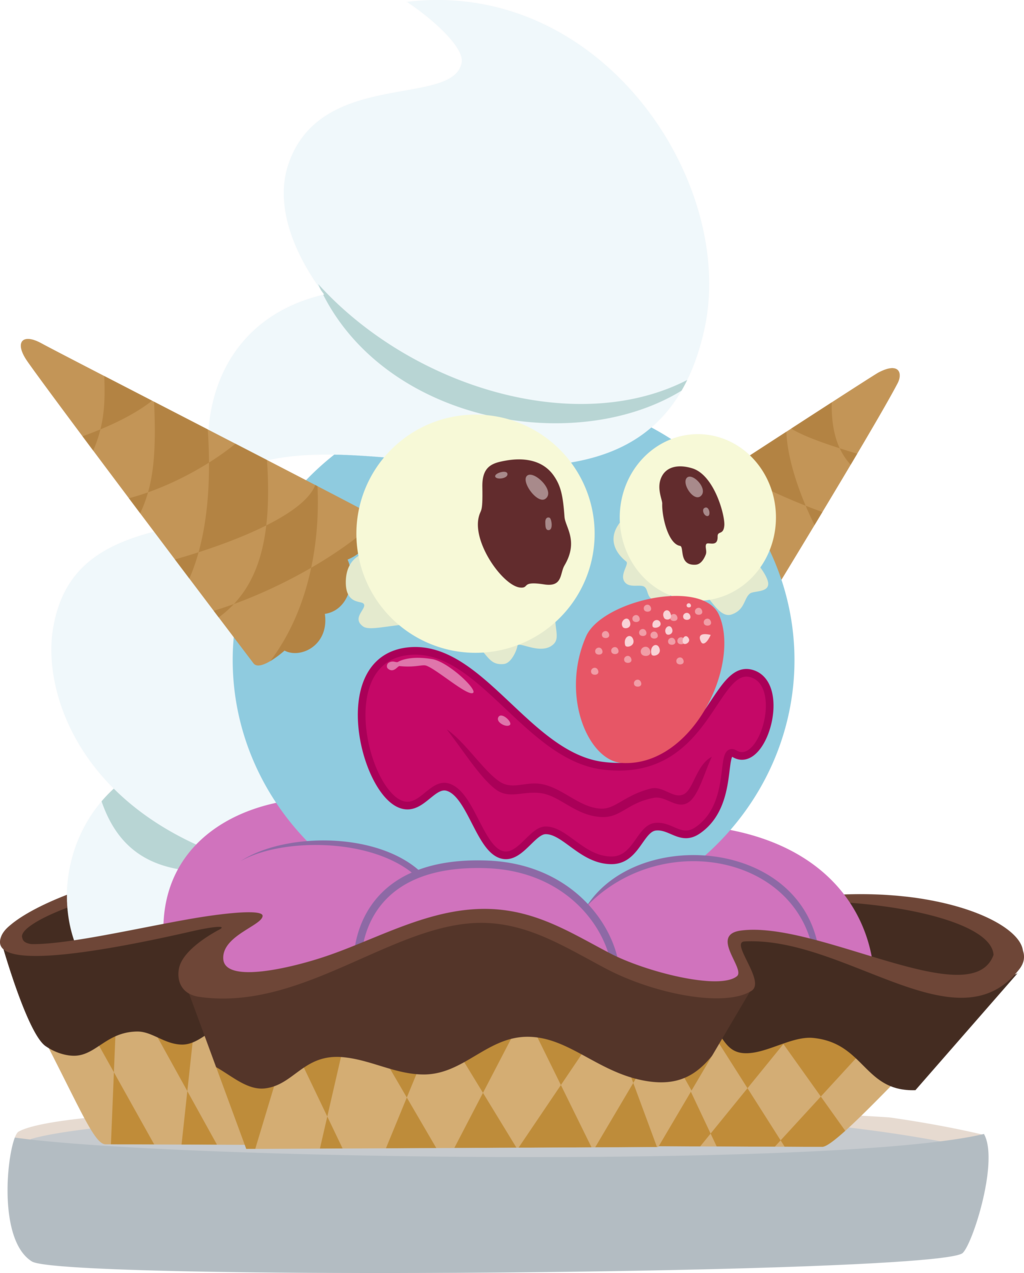 Sundae clipart vector. Clown by comeha on